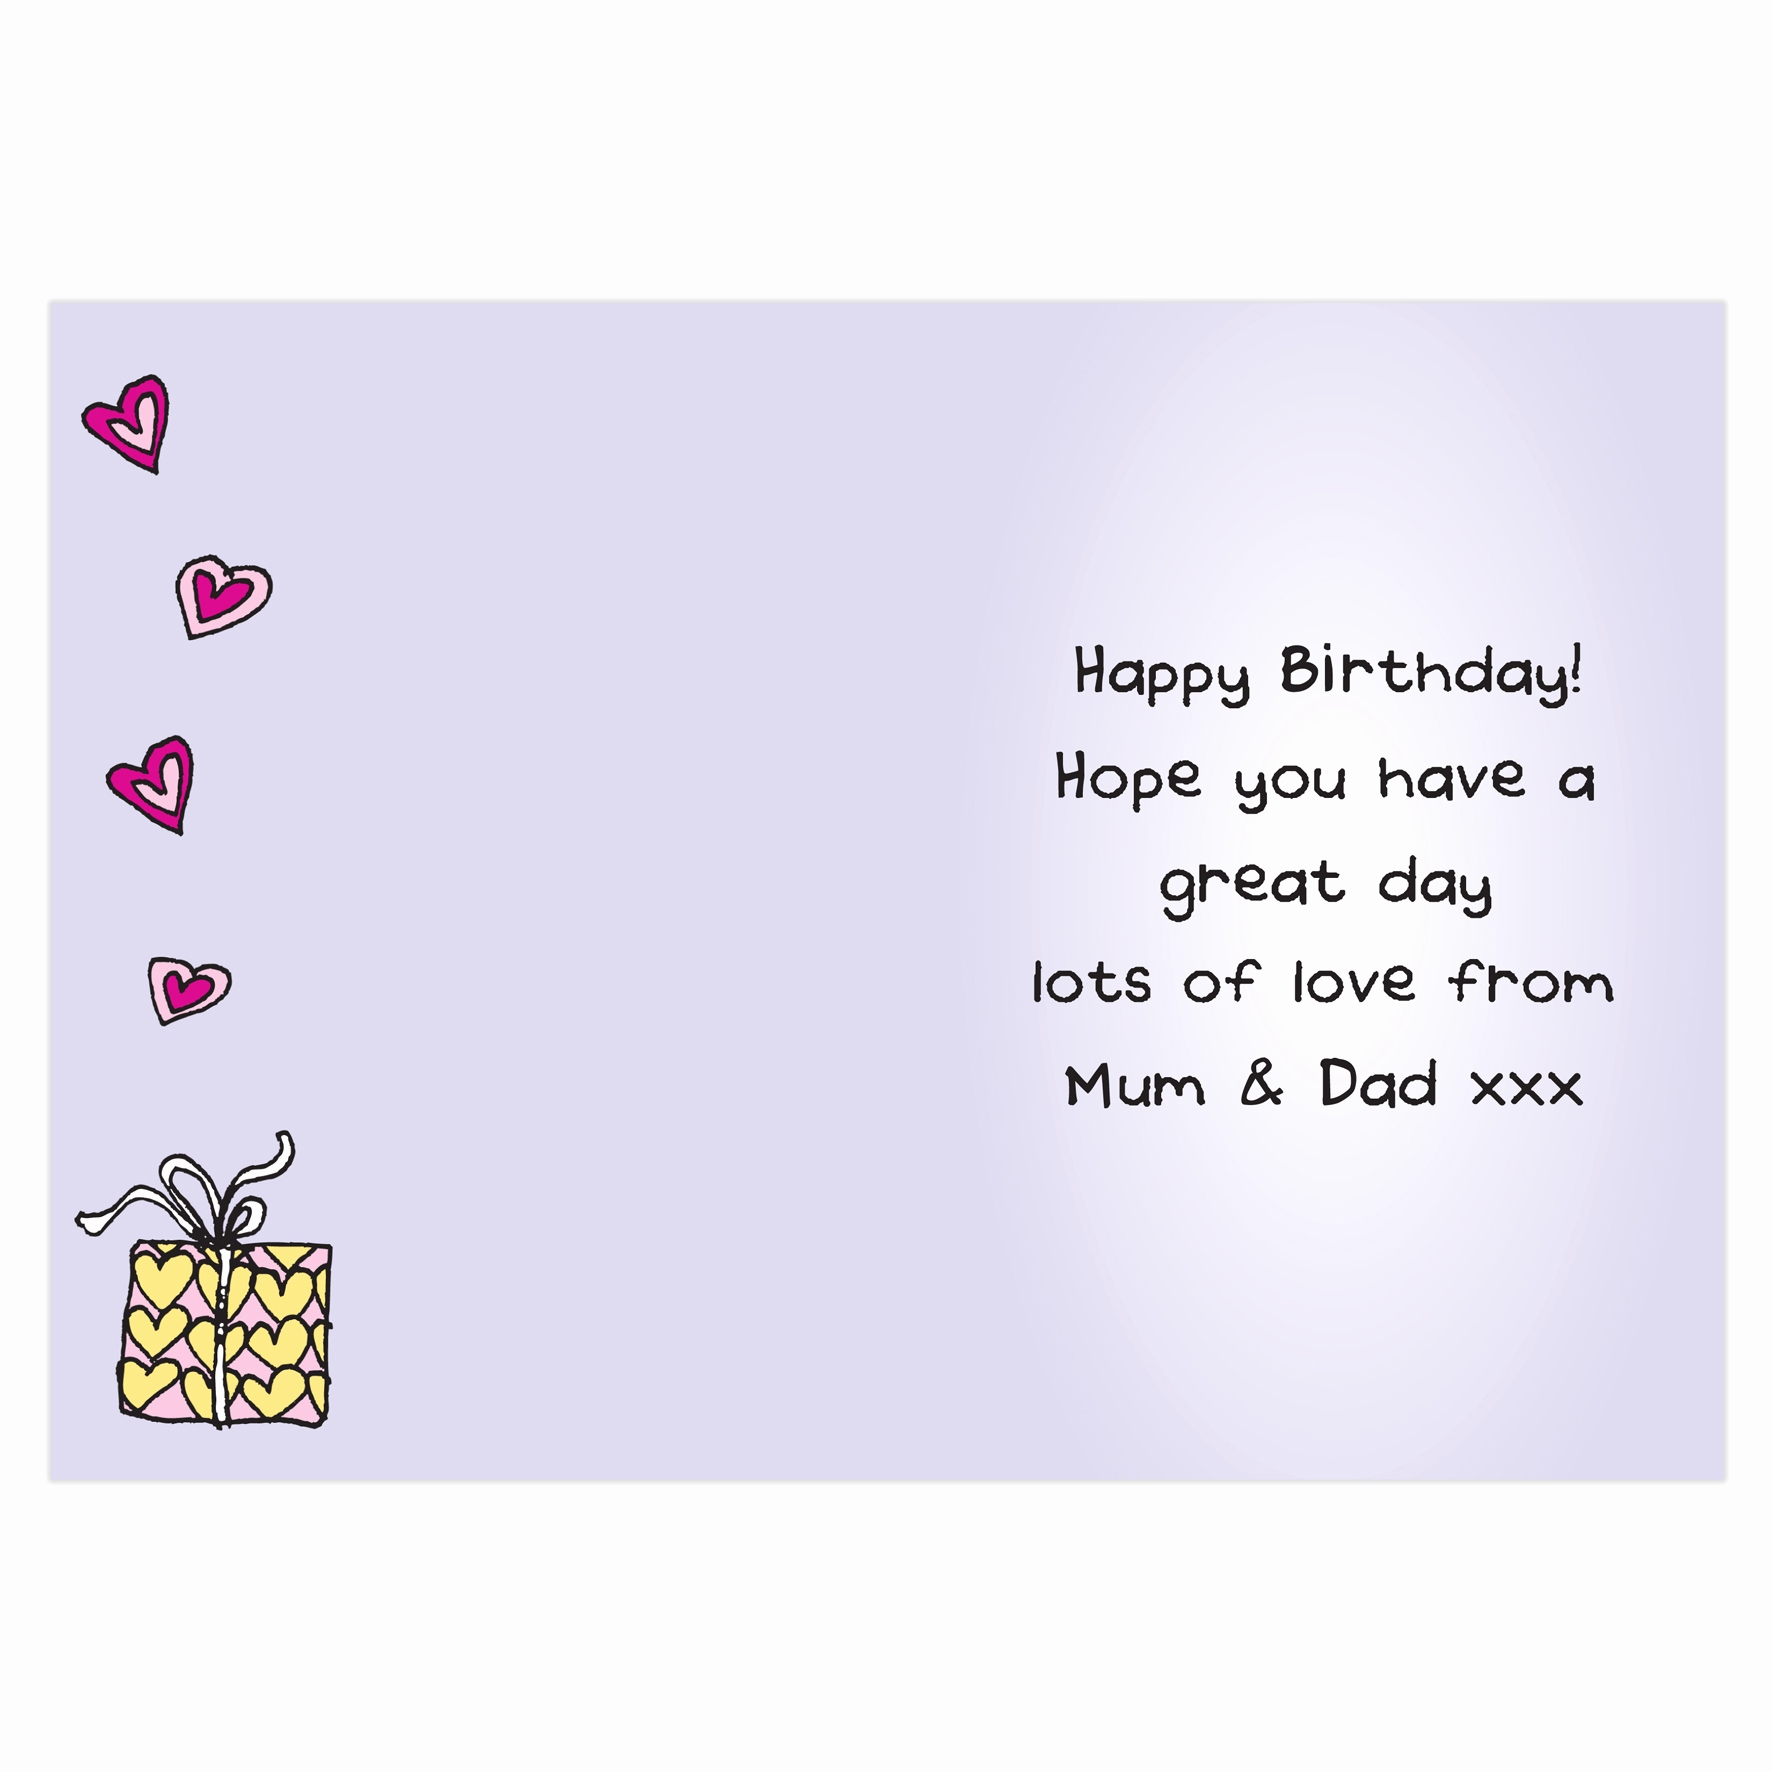 mum birthday card message ; mom-birthday-card-messages-beautiful-birthday-card-sayings-girlfriend-birthday-snydle-birthday-wishes-of-mom-birthday-card-messages